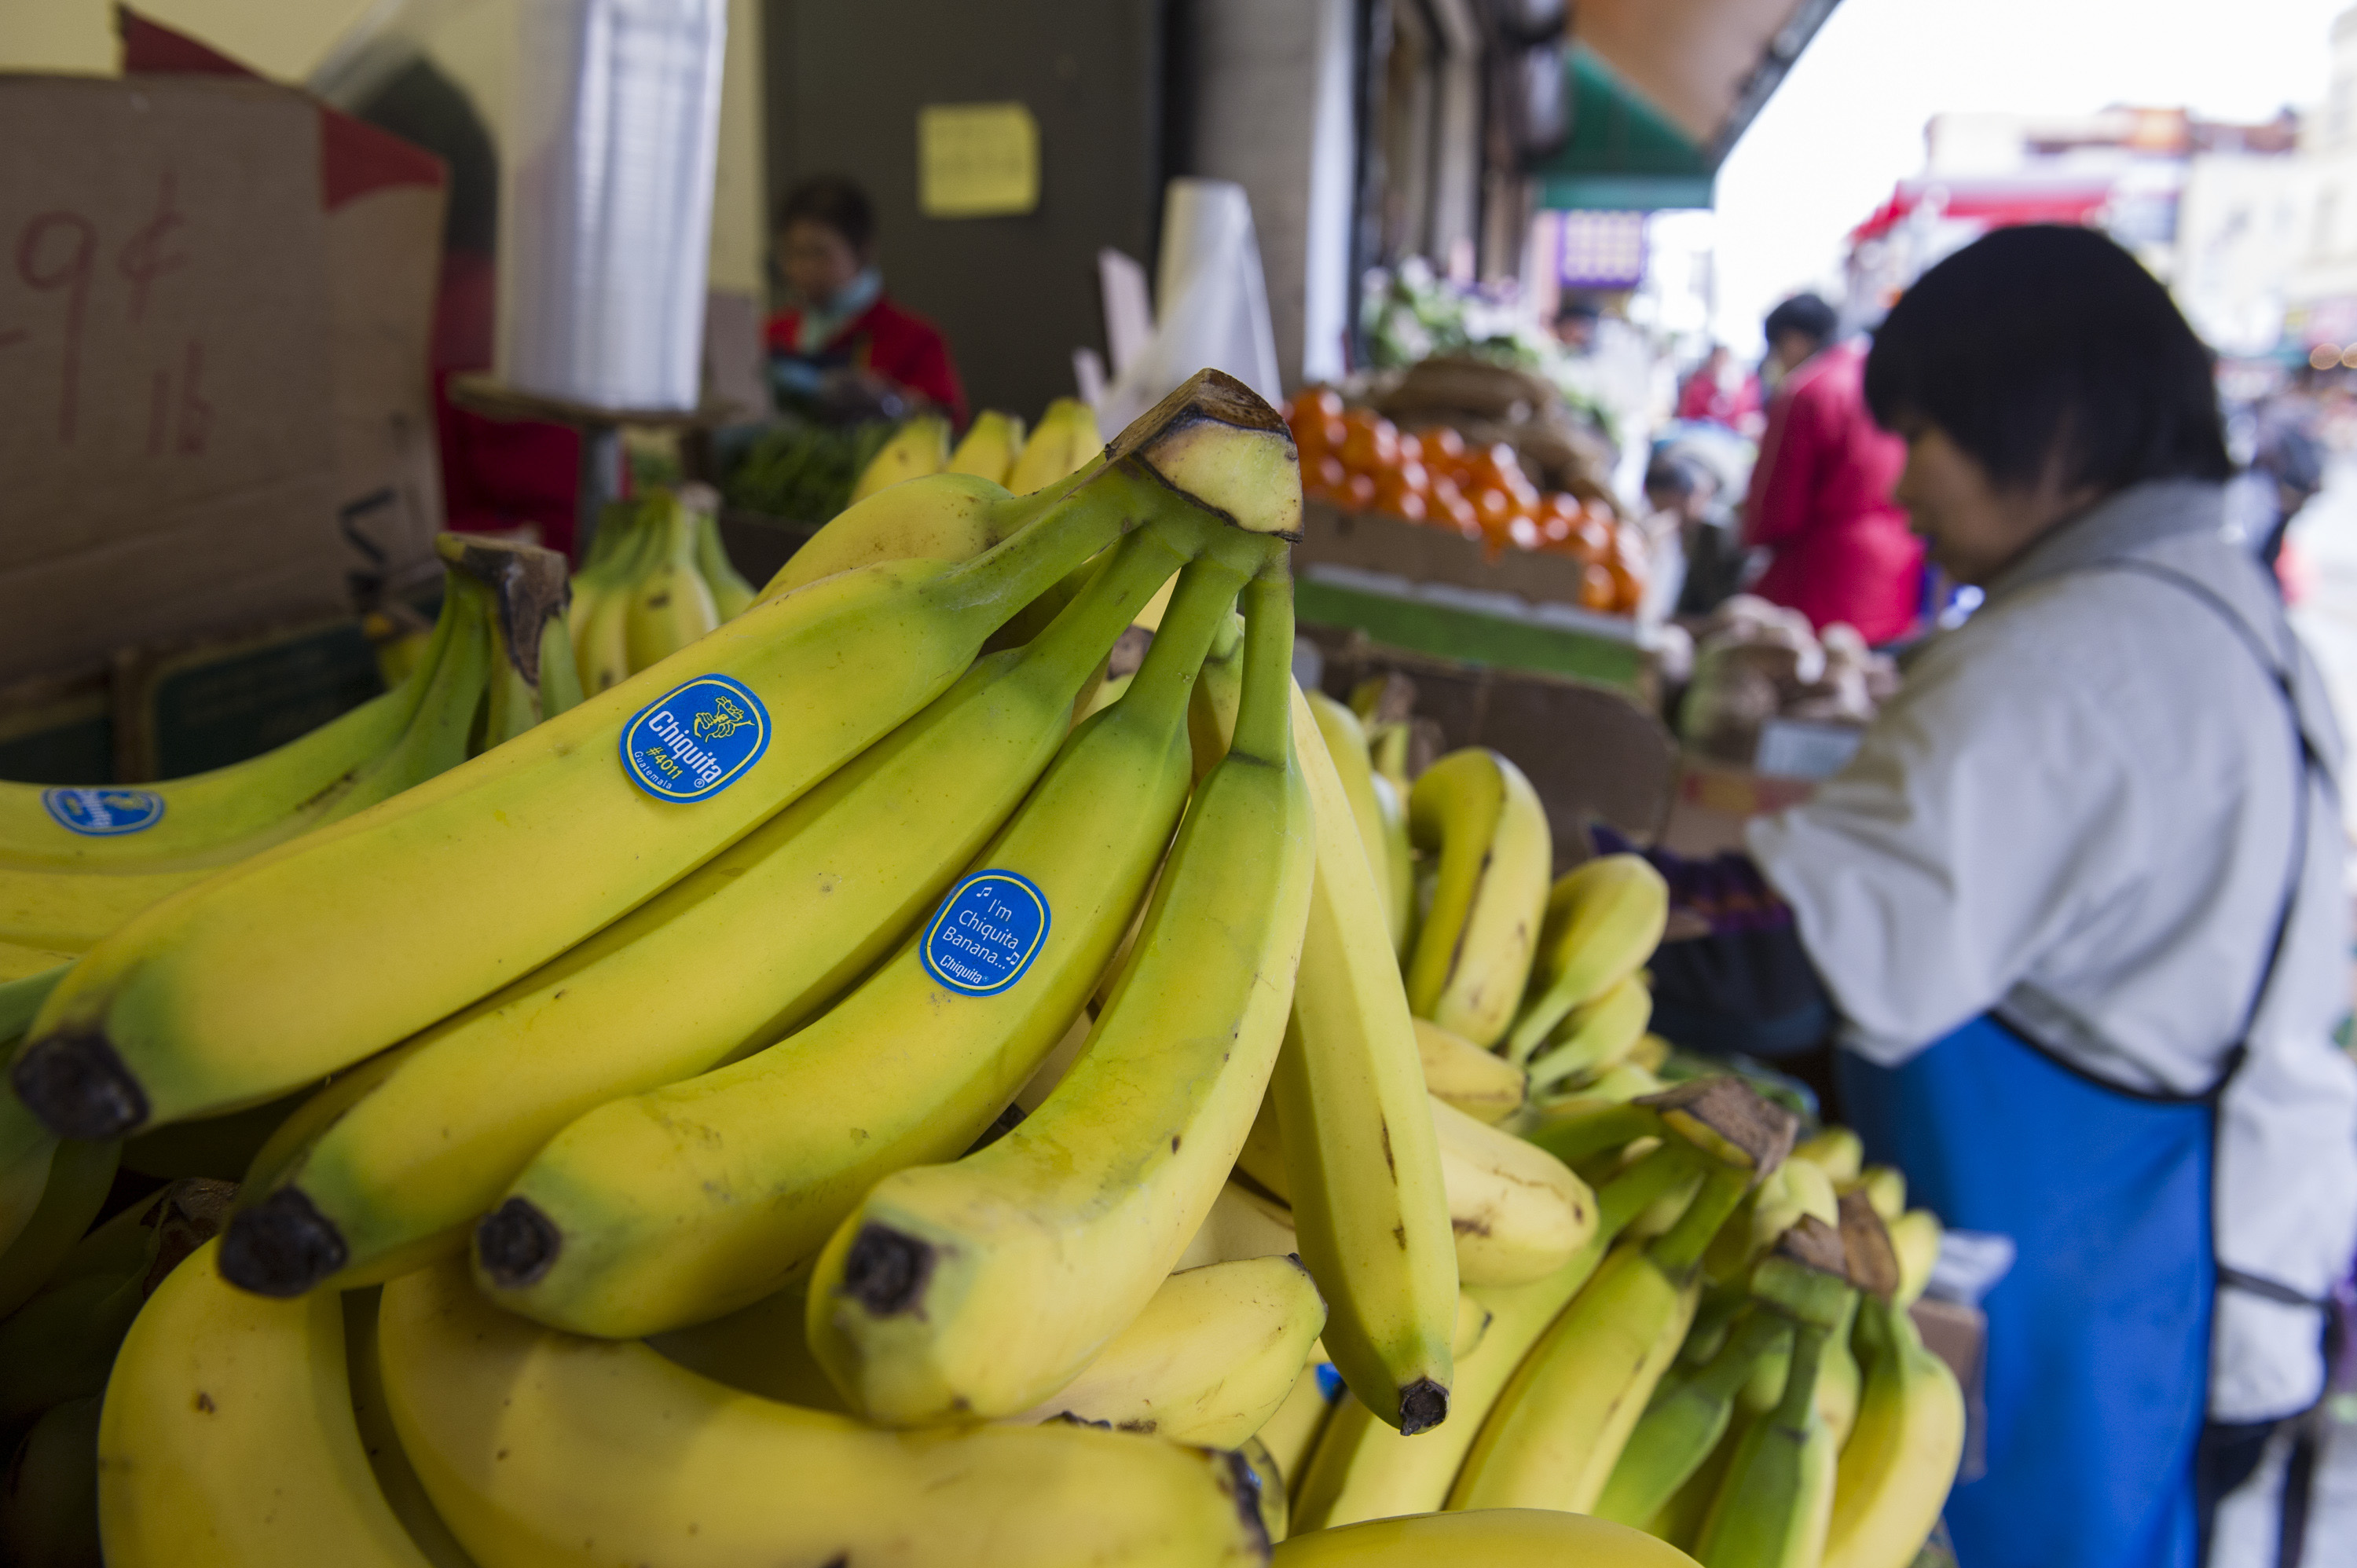 Chiquita Brands International Inc. bananas are displayed at a store in Chinatown in San Francisco, California, U.S., on Tuesday, Feb. 19, 2013.